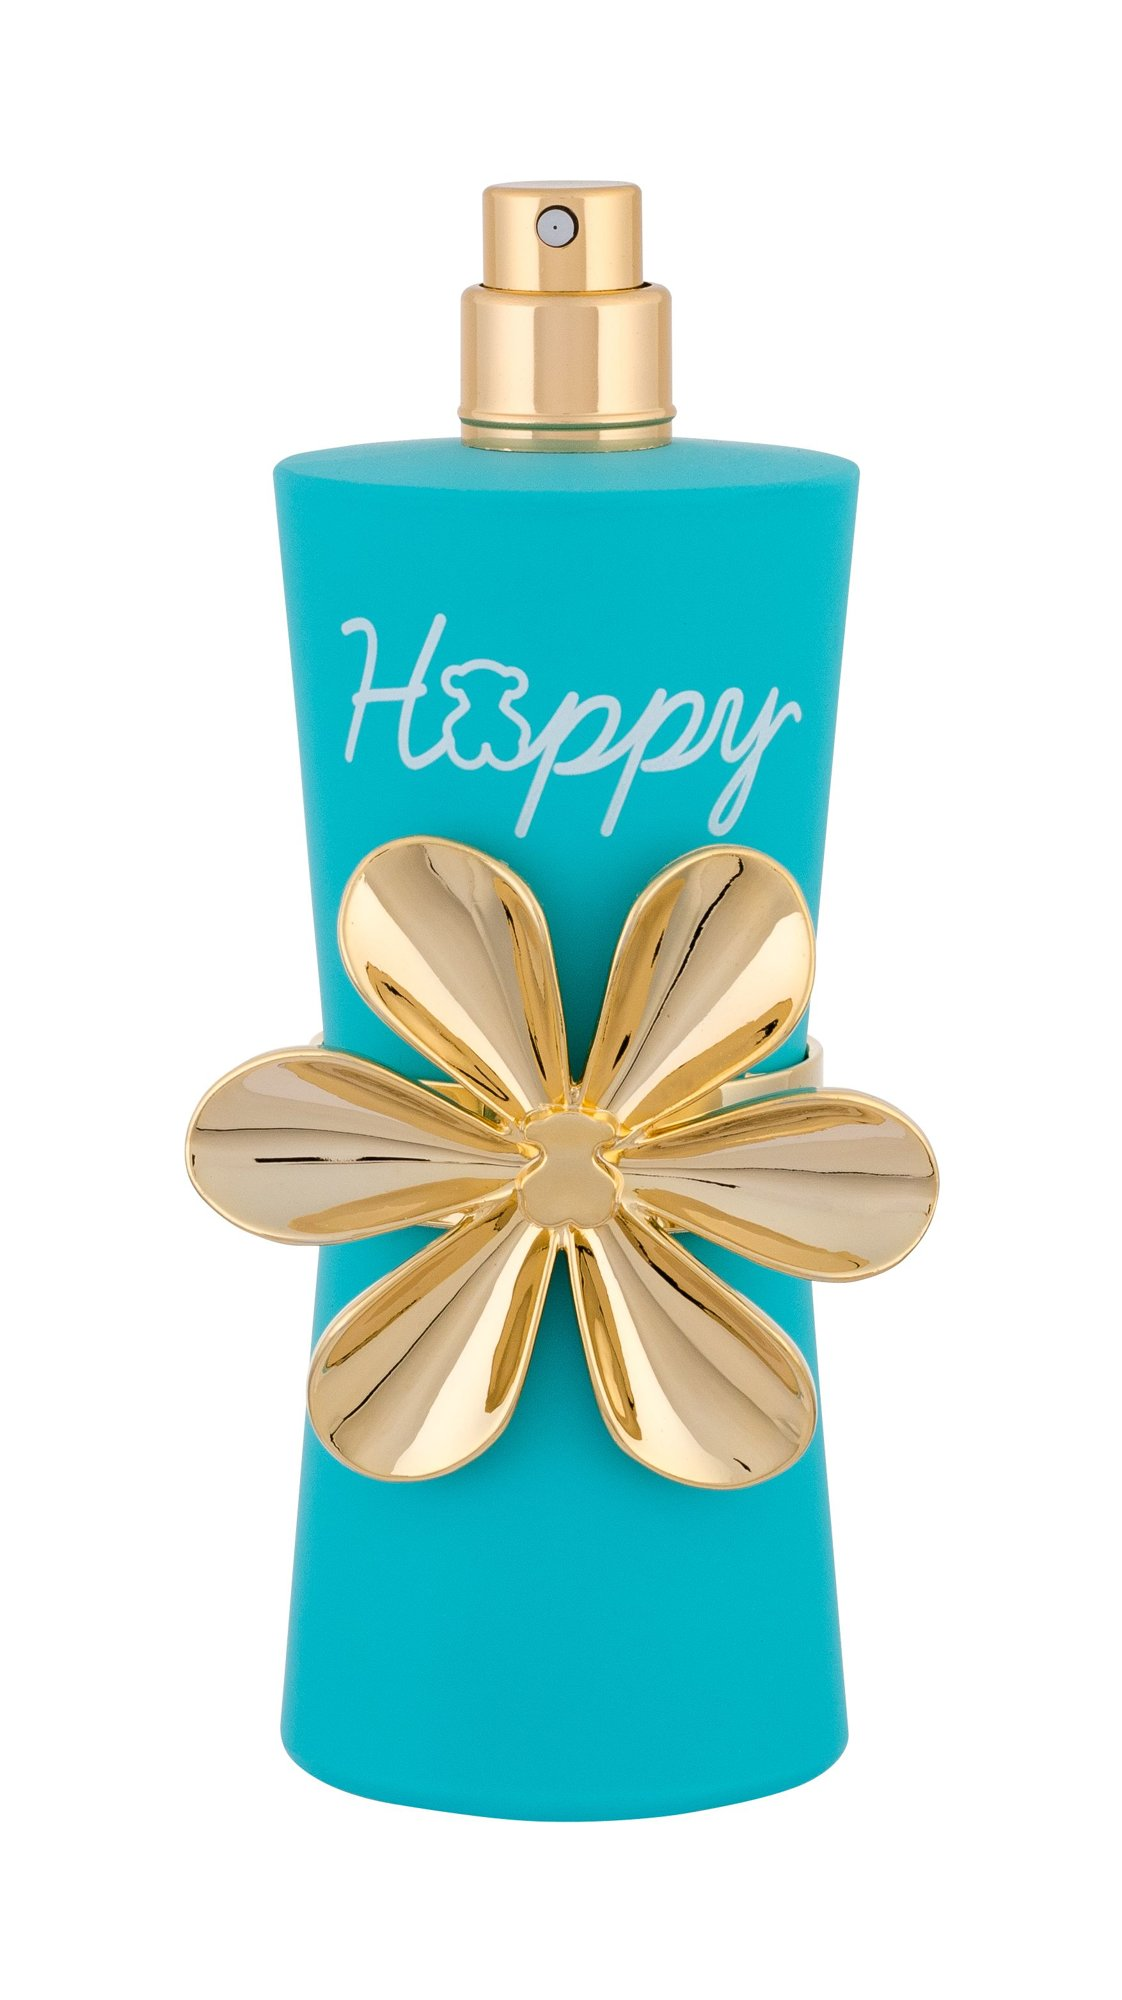 TOUS Happy Moments Eau de Toilette 90ml